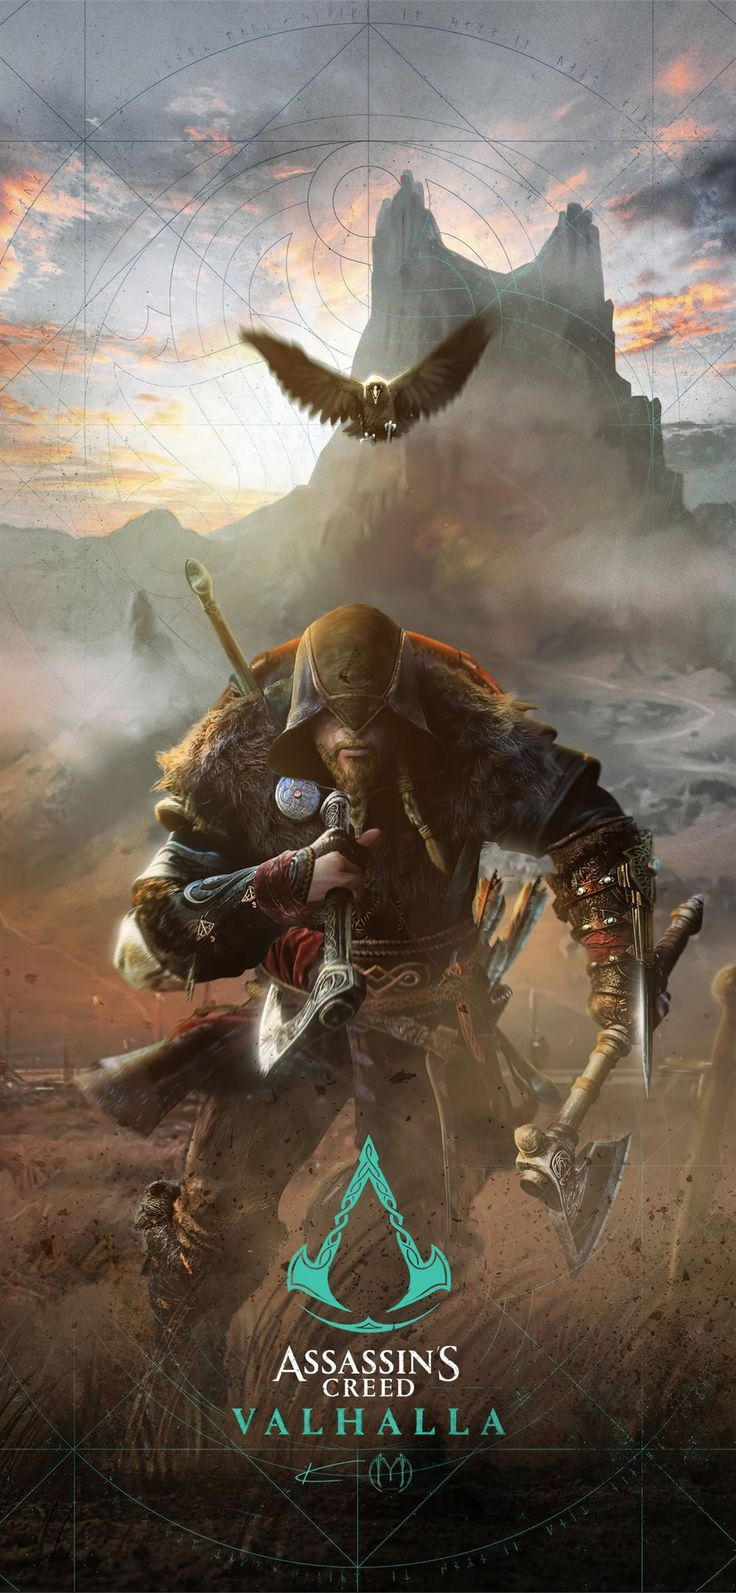 assassins creed valhalla game 2020 AssassinsCreedValhalla